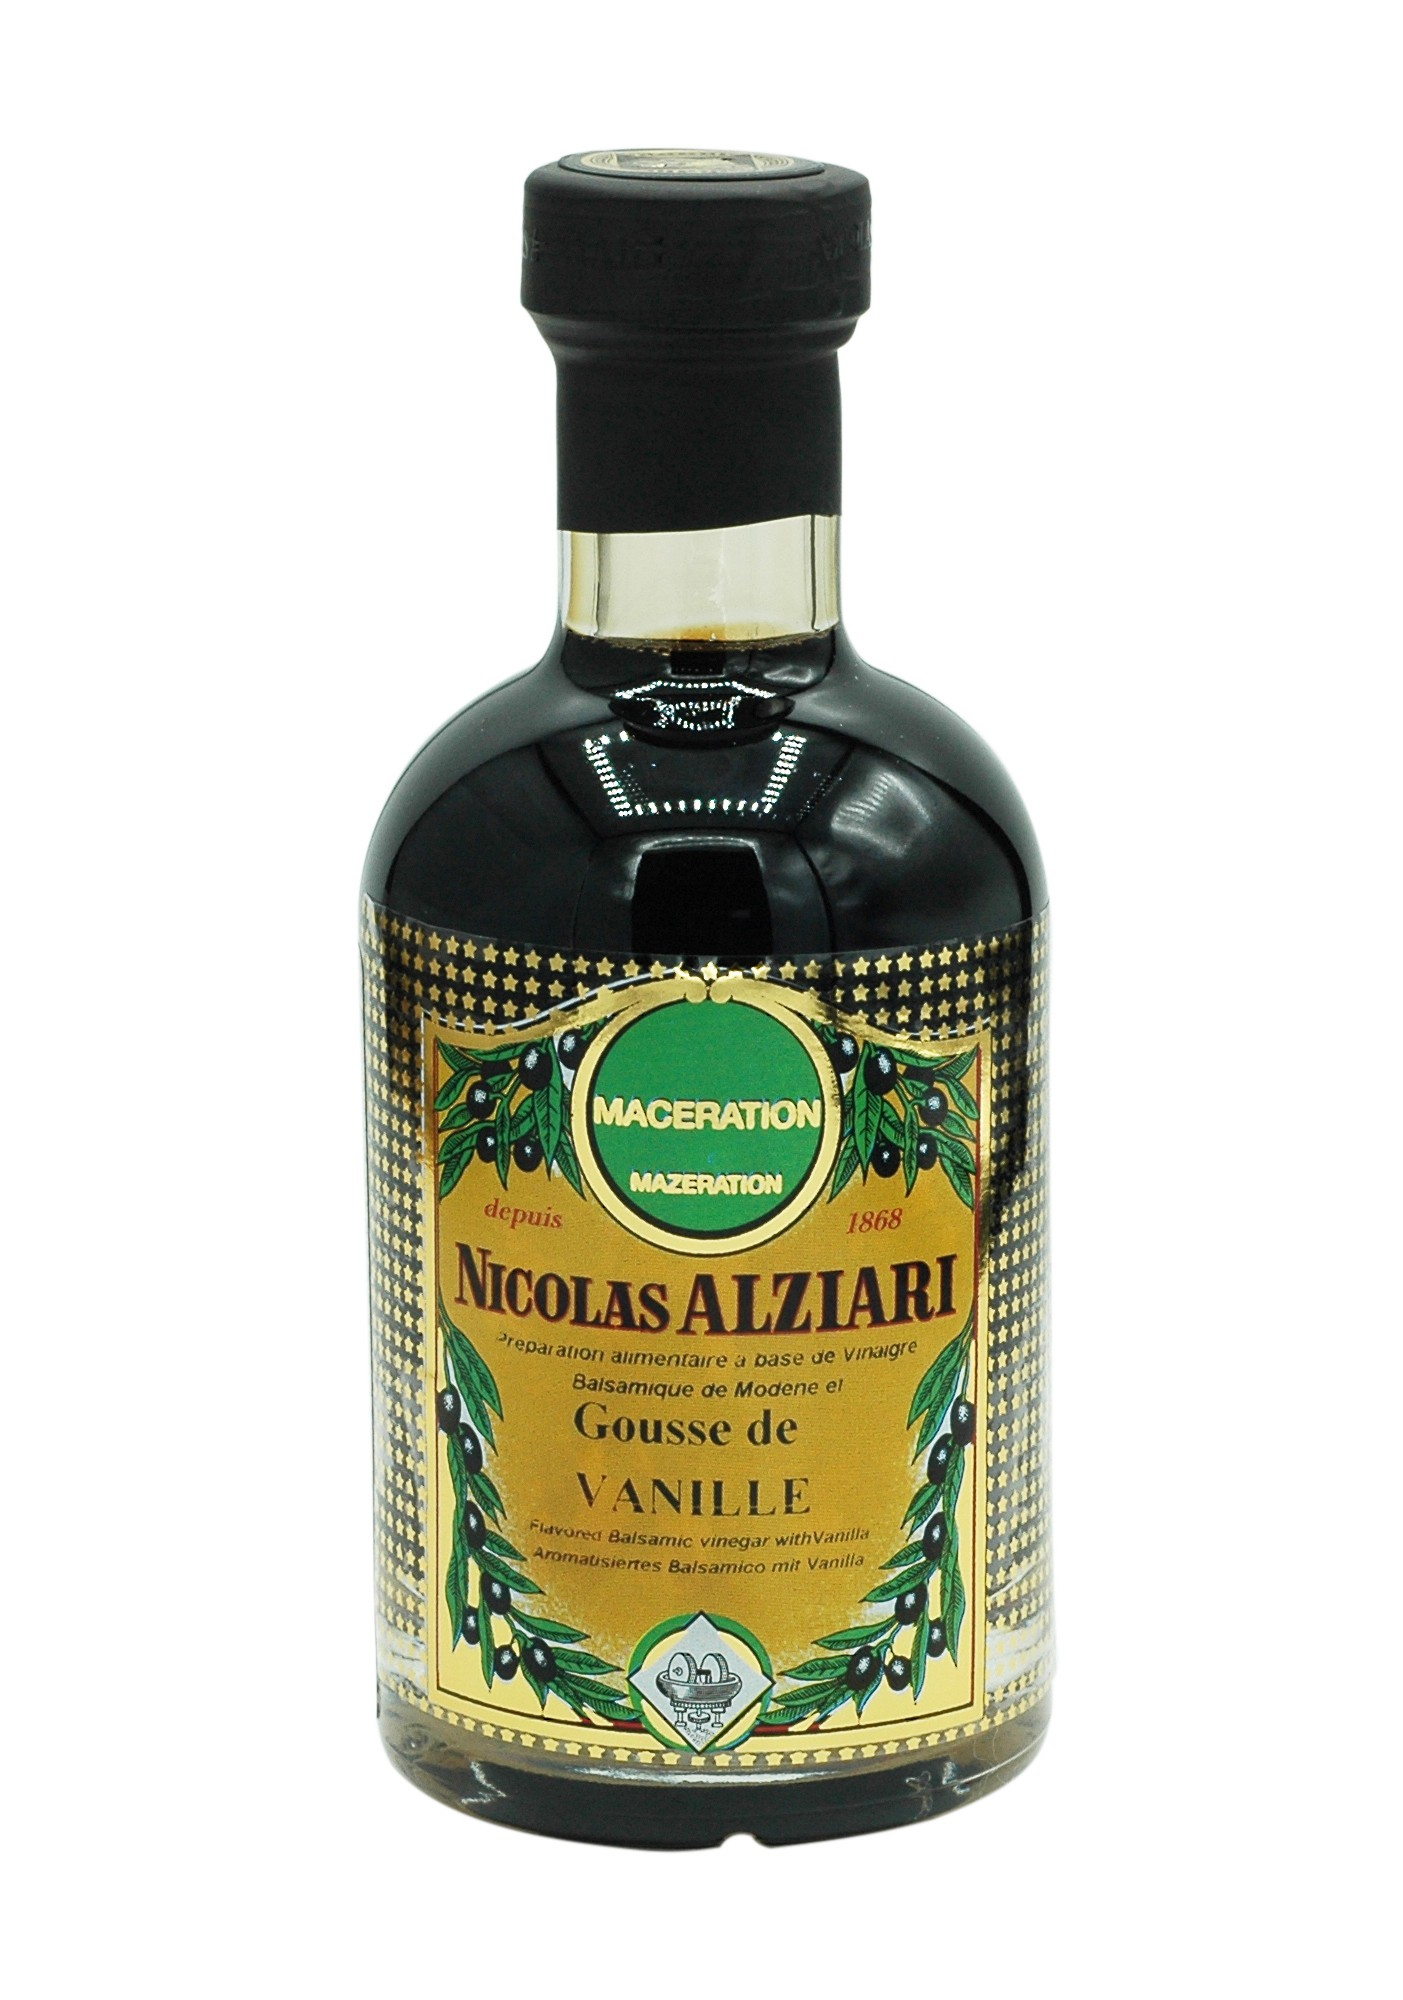 Balsamic vinegar with vanilla 200 ml